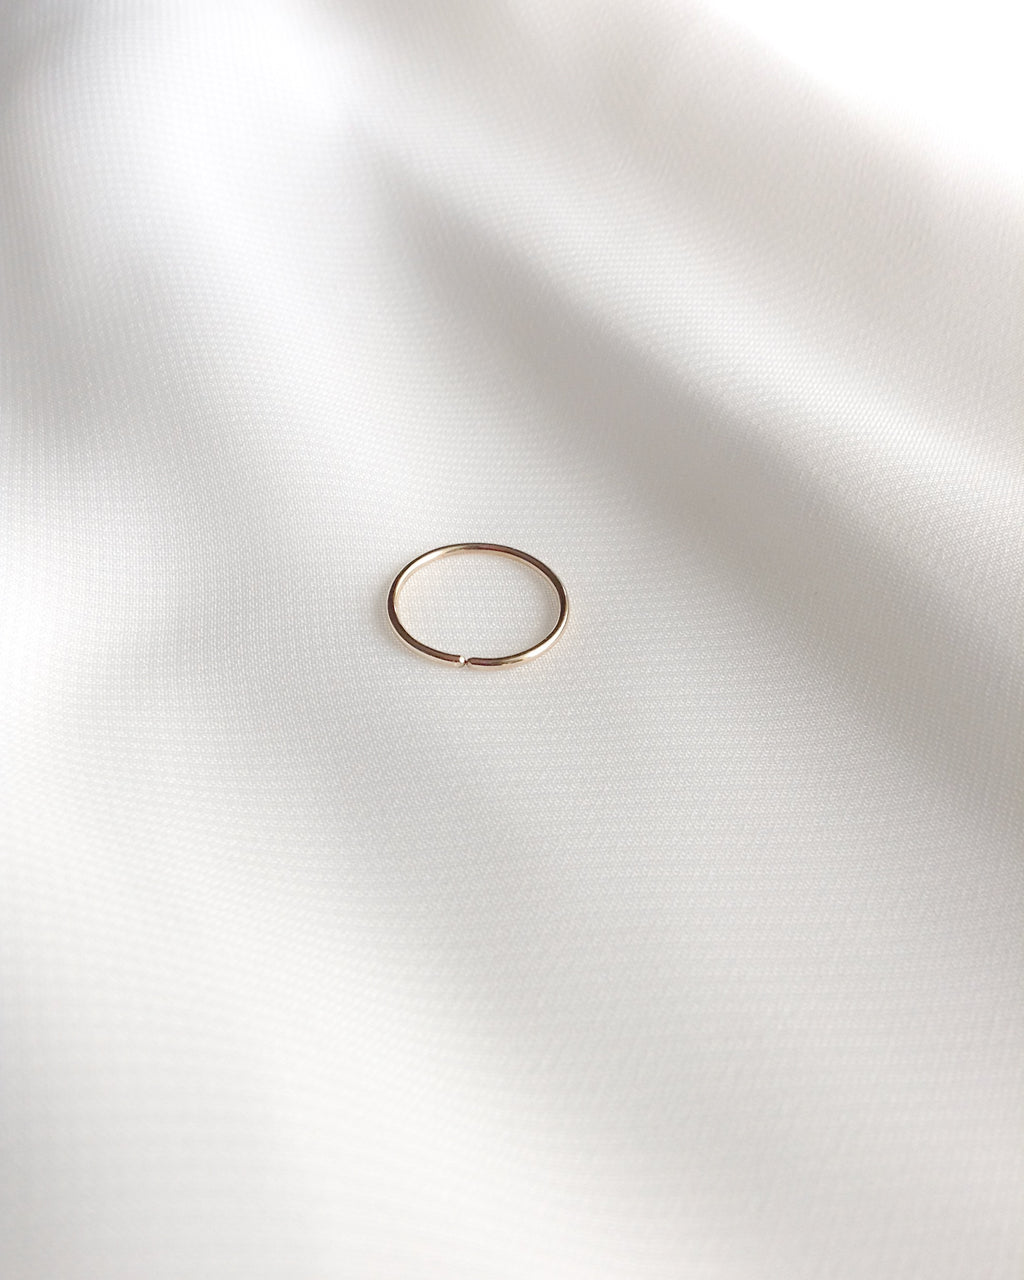 Snug Nose Ring in Gold Filled Sterling Silver or Rose Gold Filled | Small Nose Ring Hoop | IB Jewelry